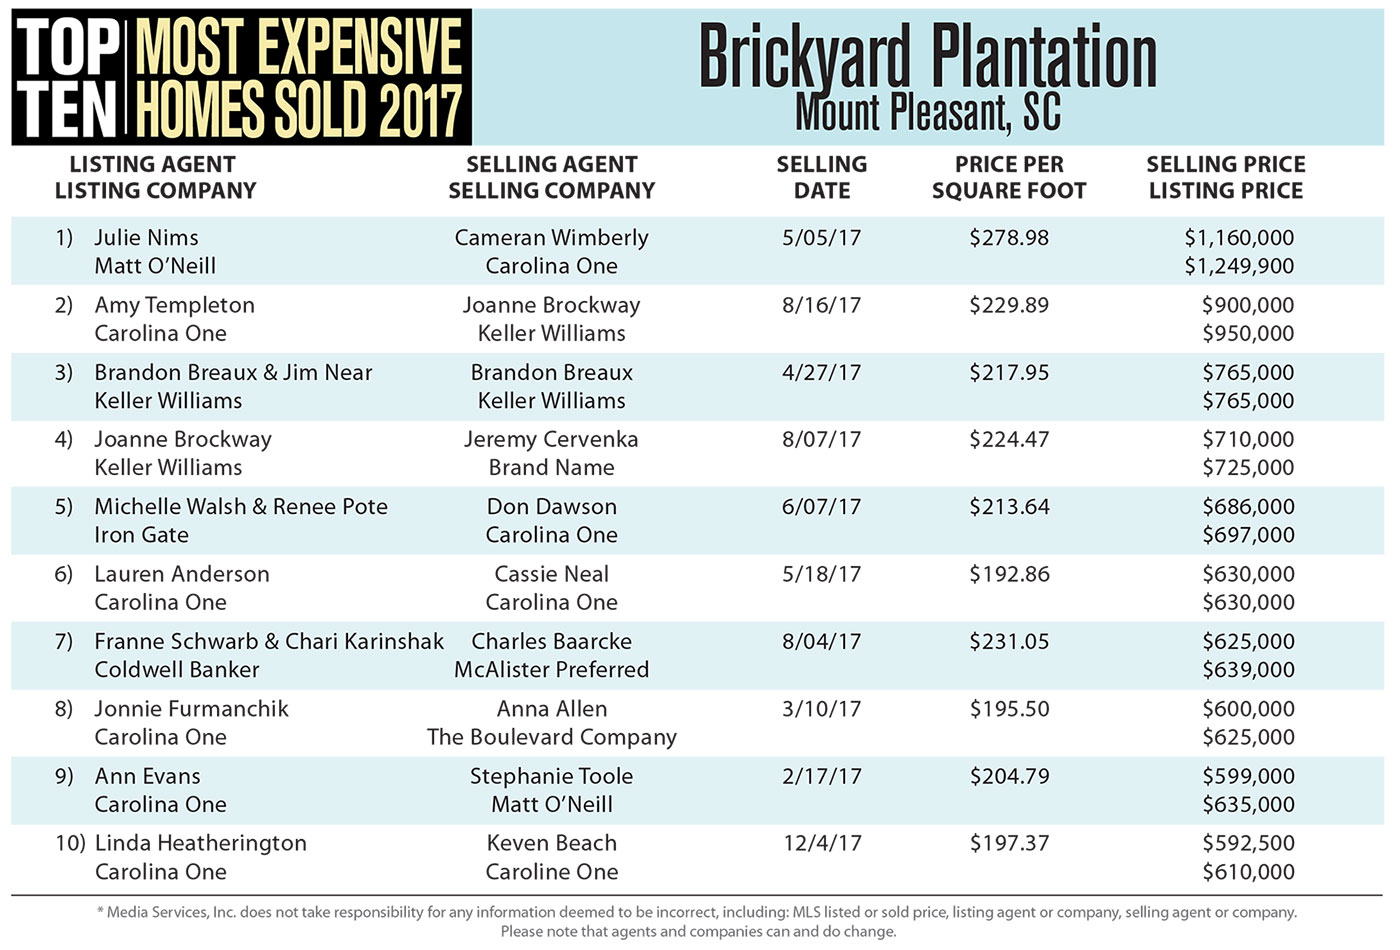 Brickyard Plantation - Top Ten Most Expensive Homes Sold in 2017